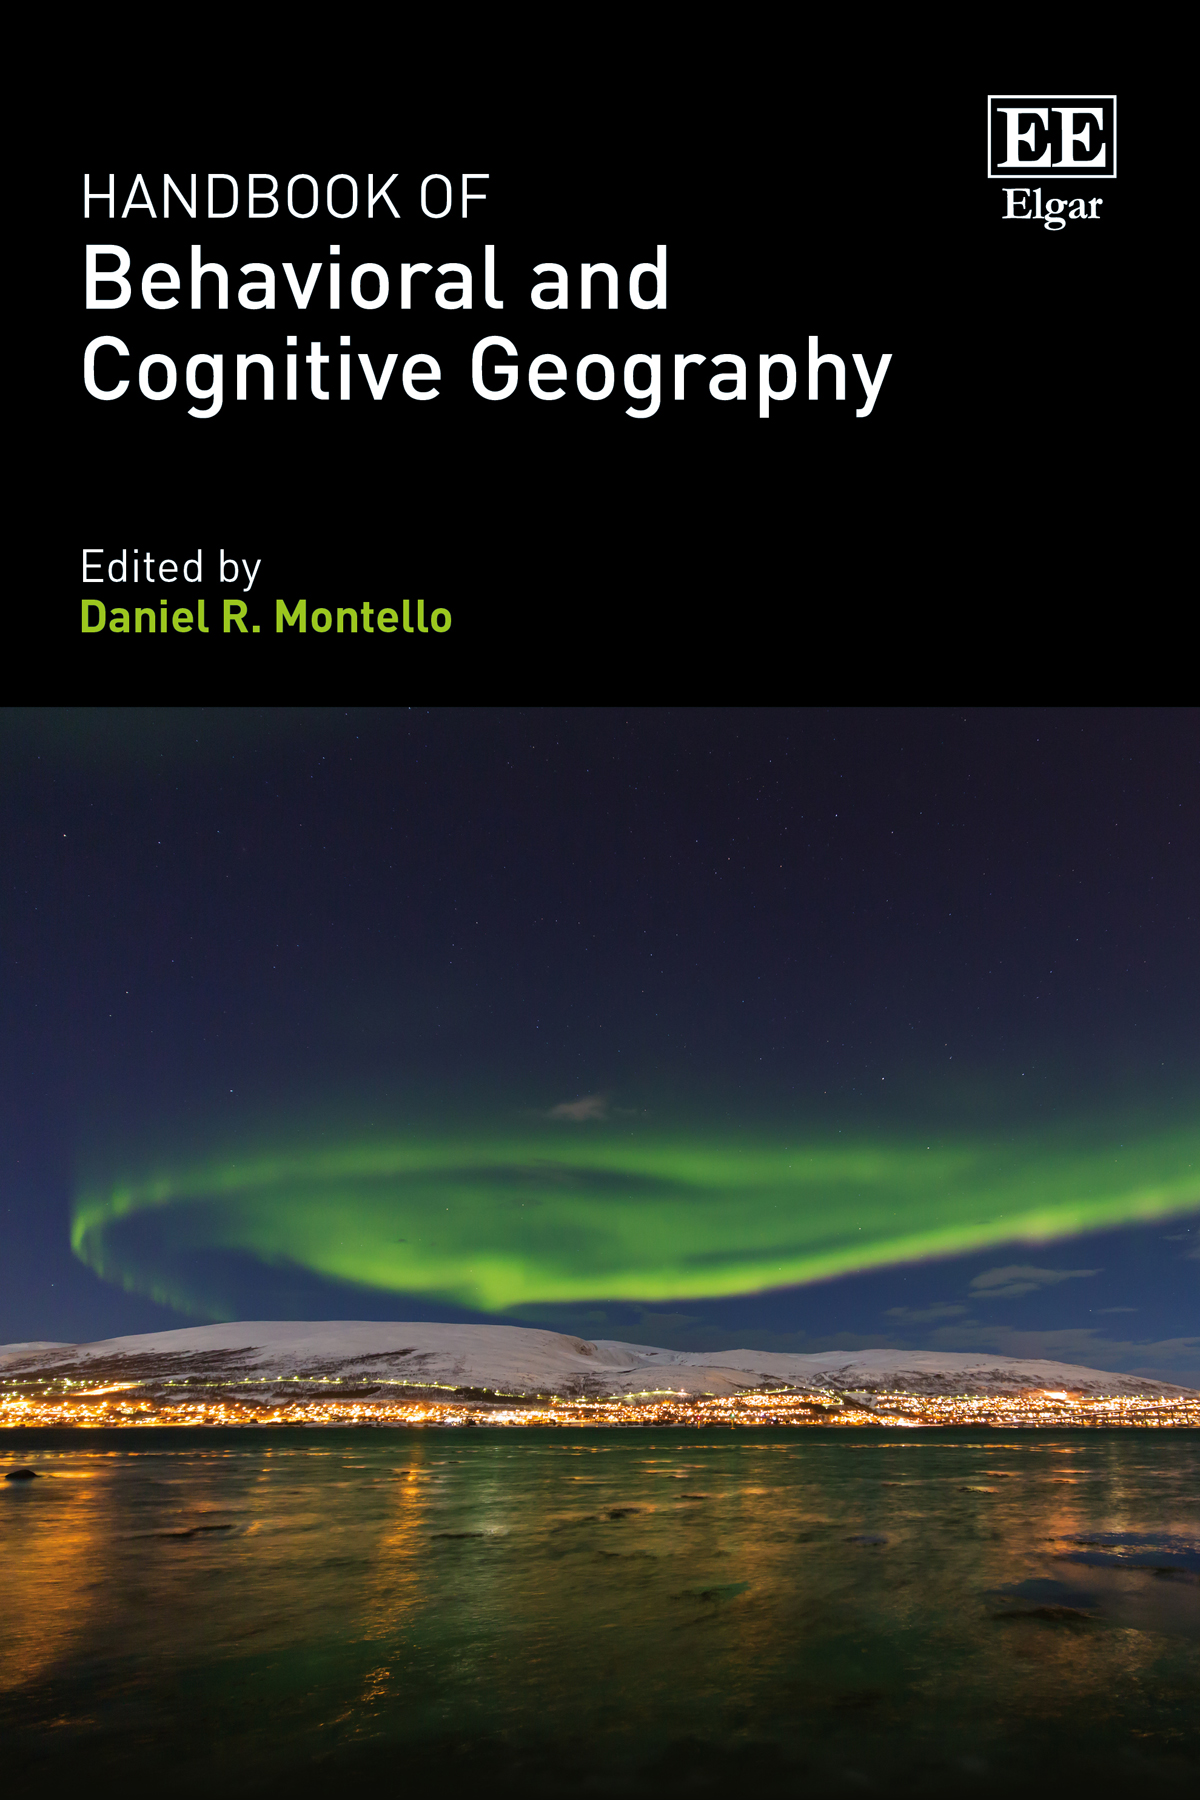 Handbook of Behavioral and Cognitive Geography 2018